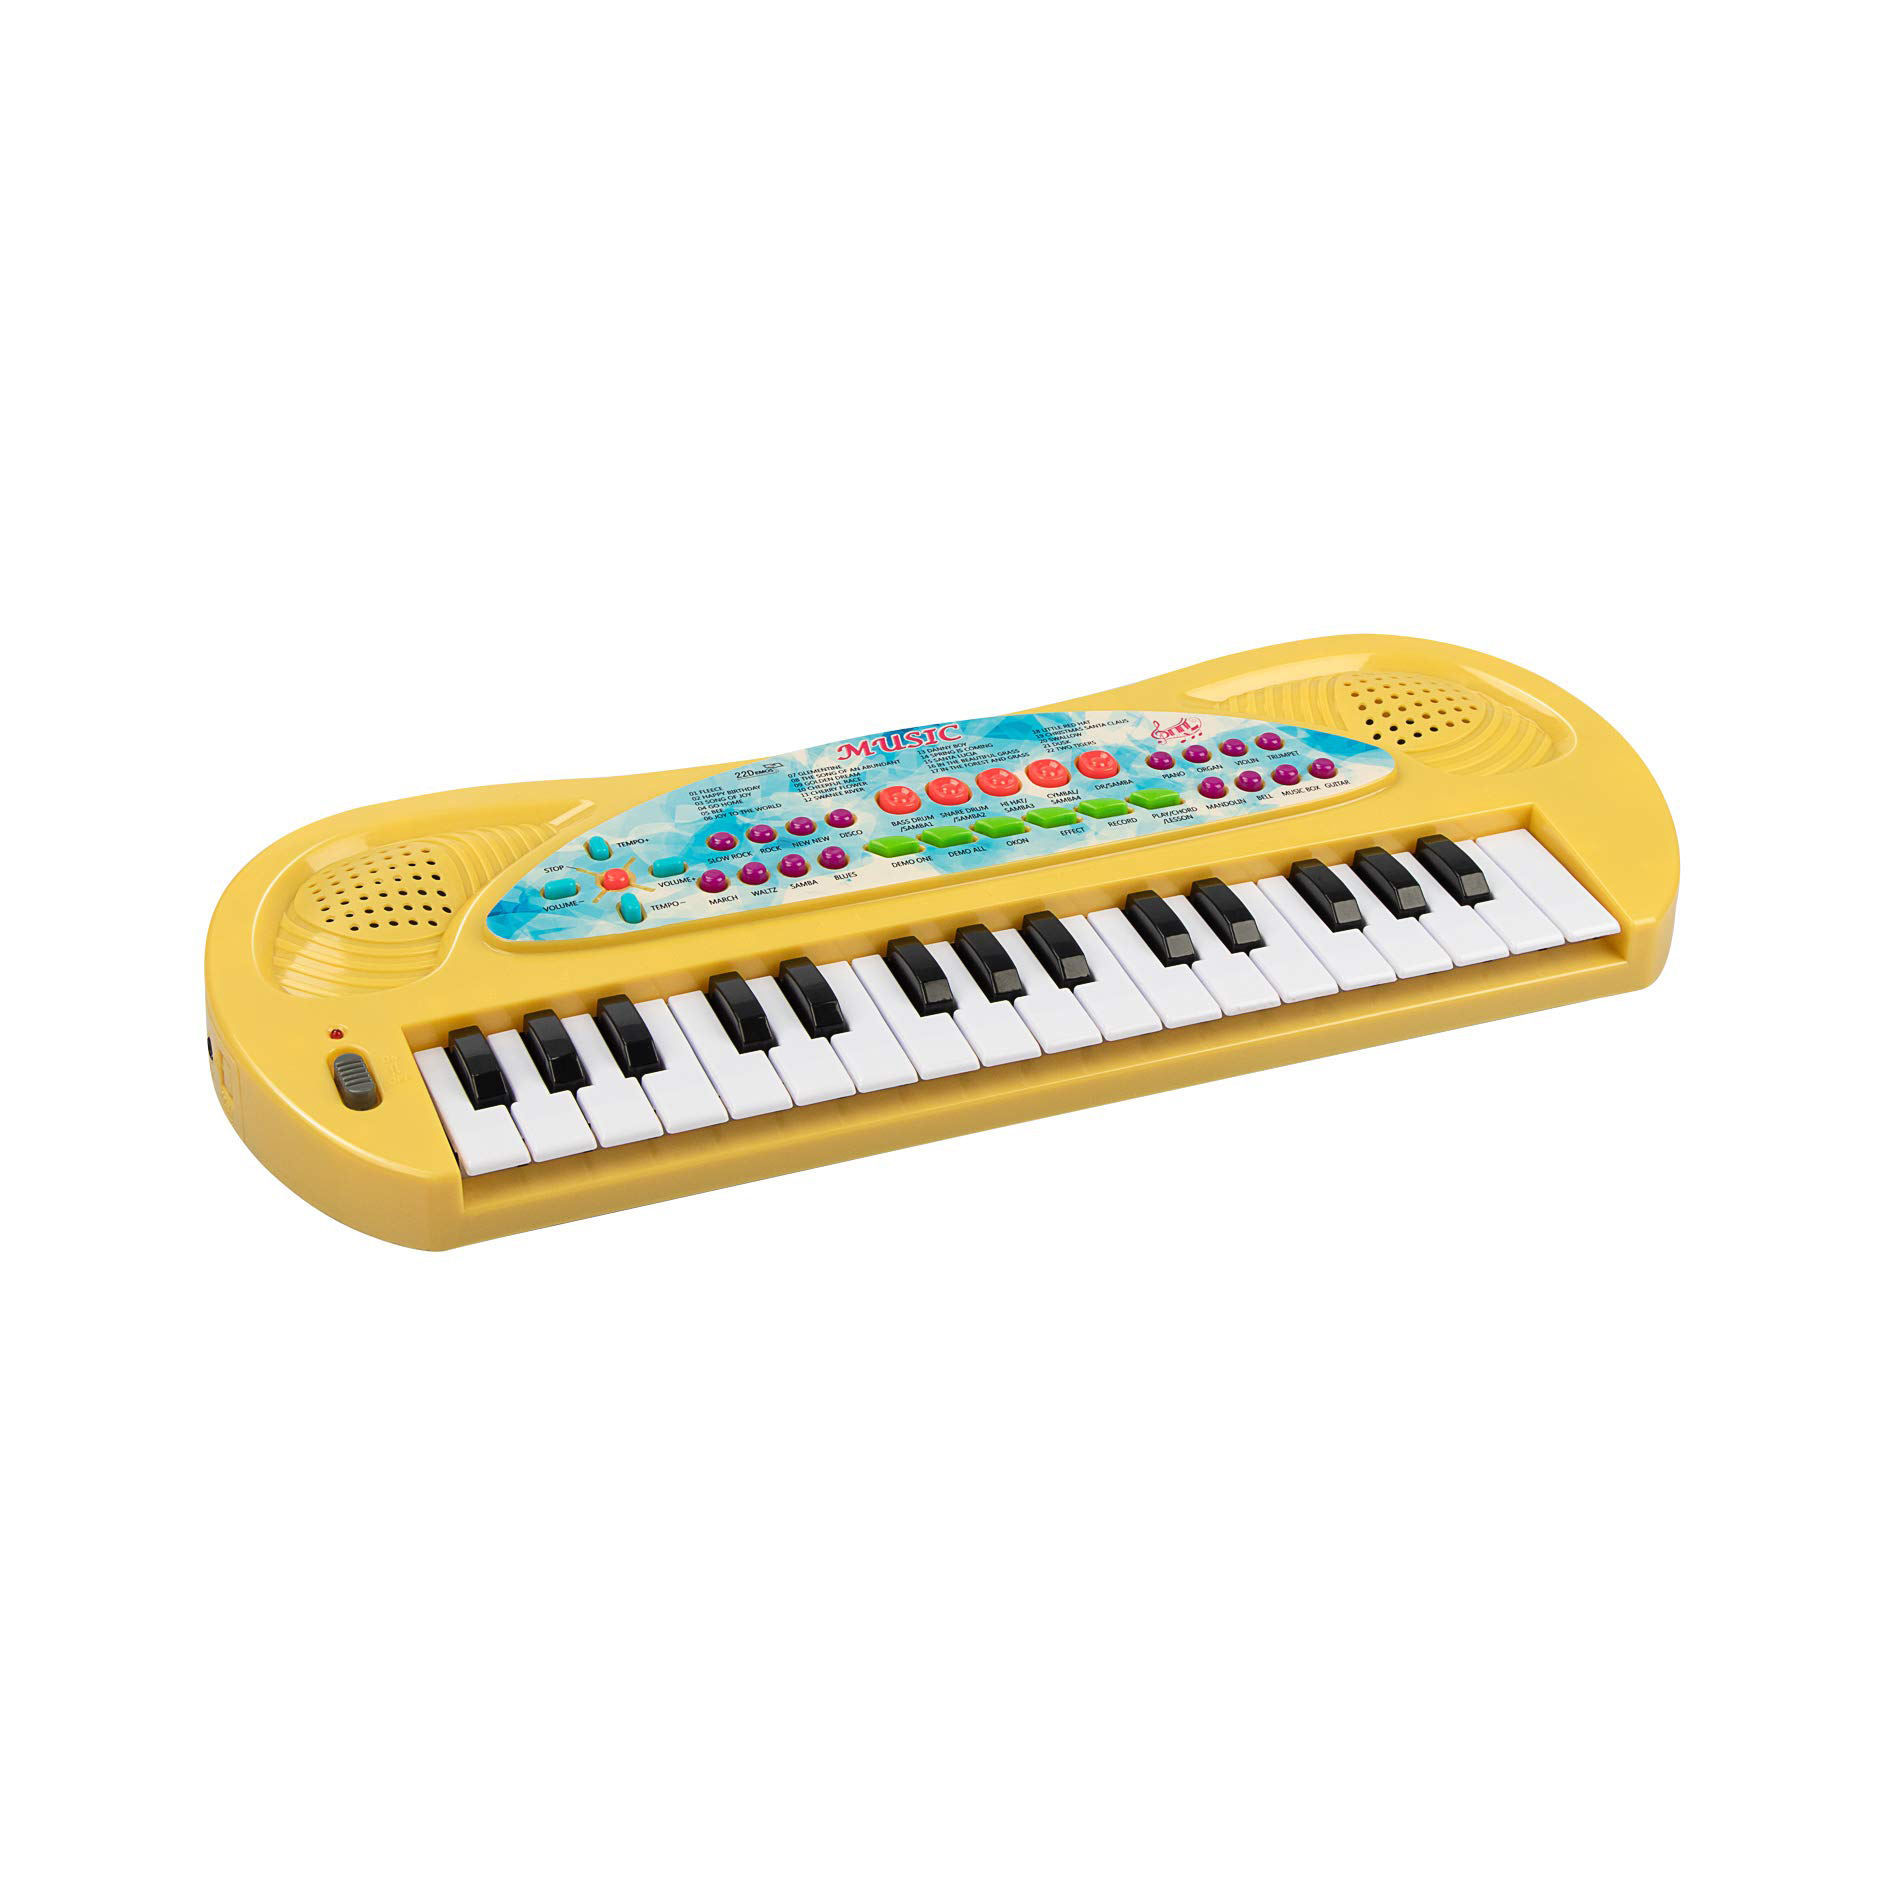 32 Keys Multifunction Portable Electronic Musical Kids Piano Keyboard for Kids Children Boys Early Learning Educational Toy